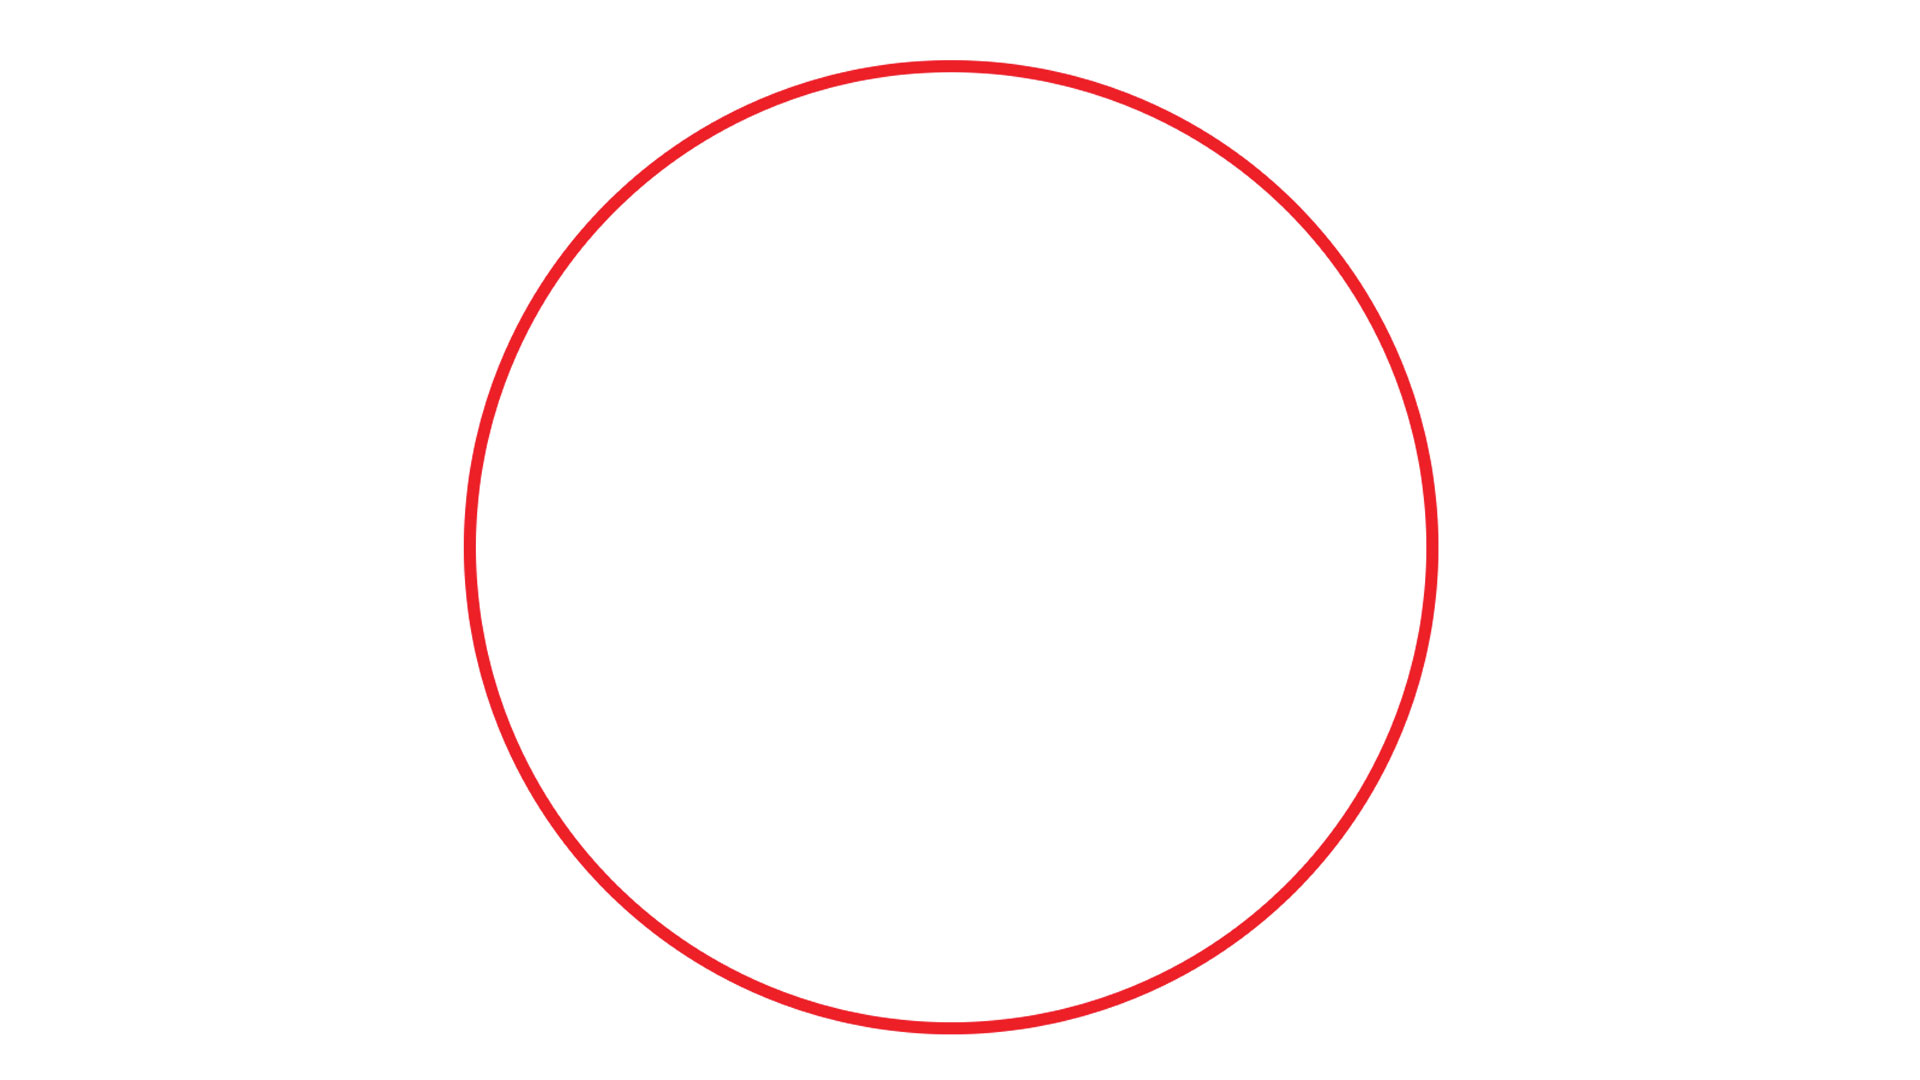 SVG on the web: Circles